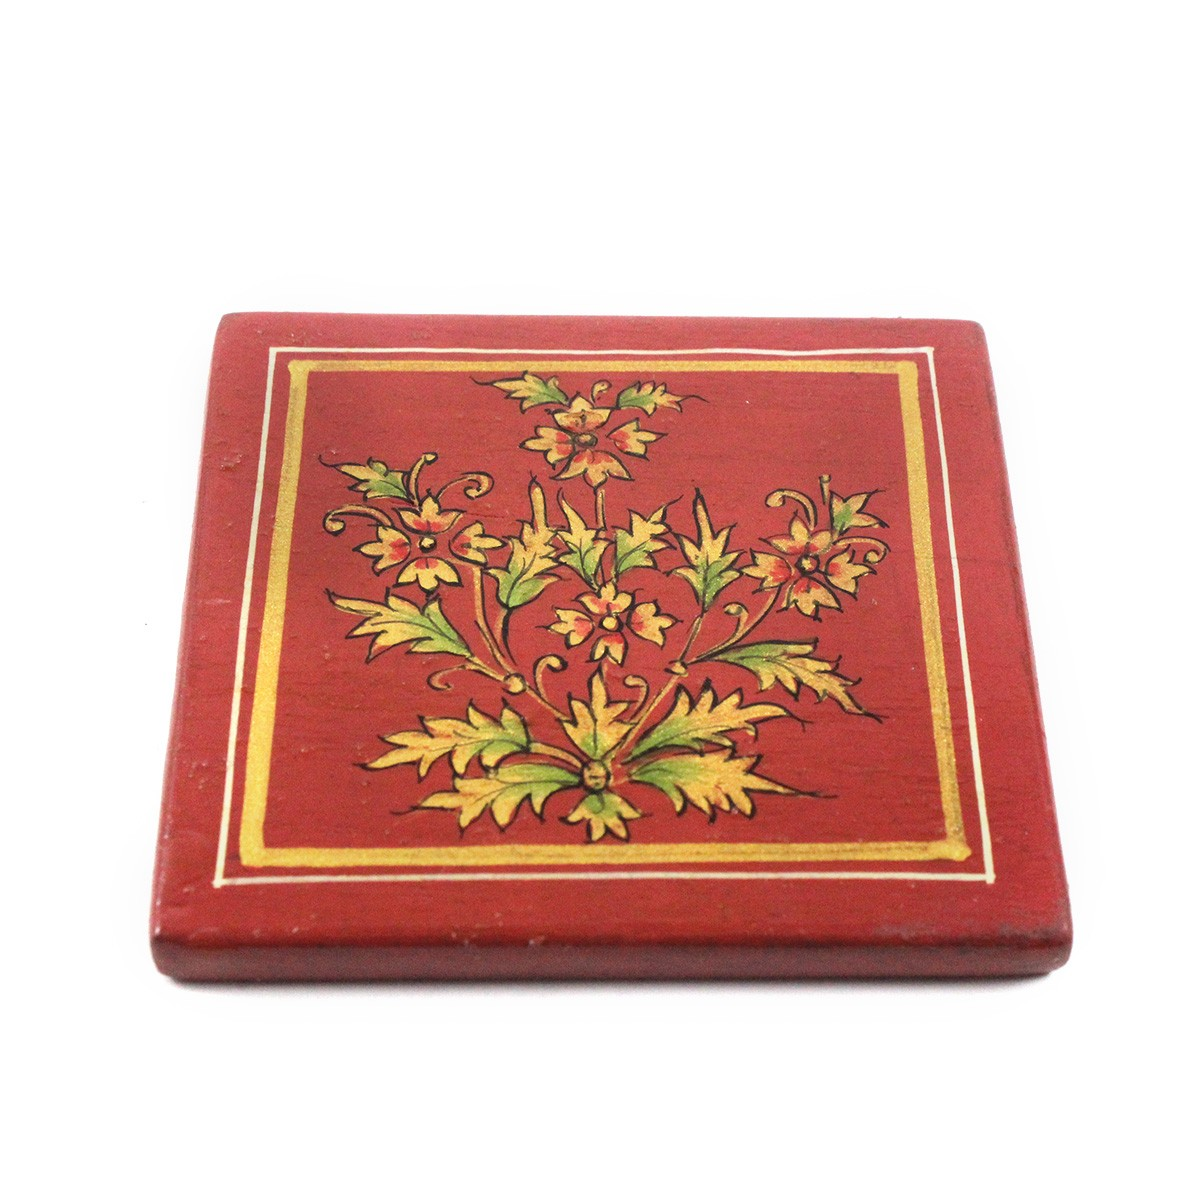 Exclusive Wooden Coaster Set Metal Inlay Art For Gifting by Rural Artisans